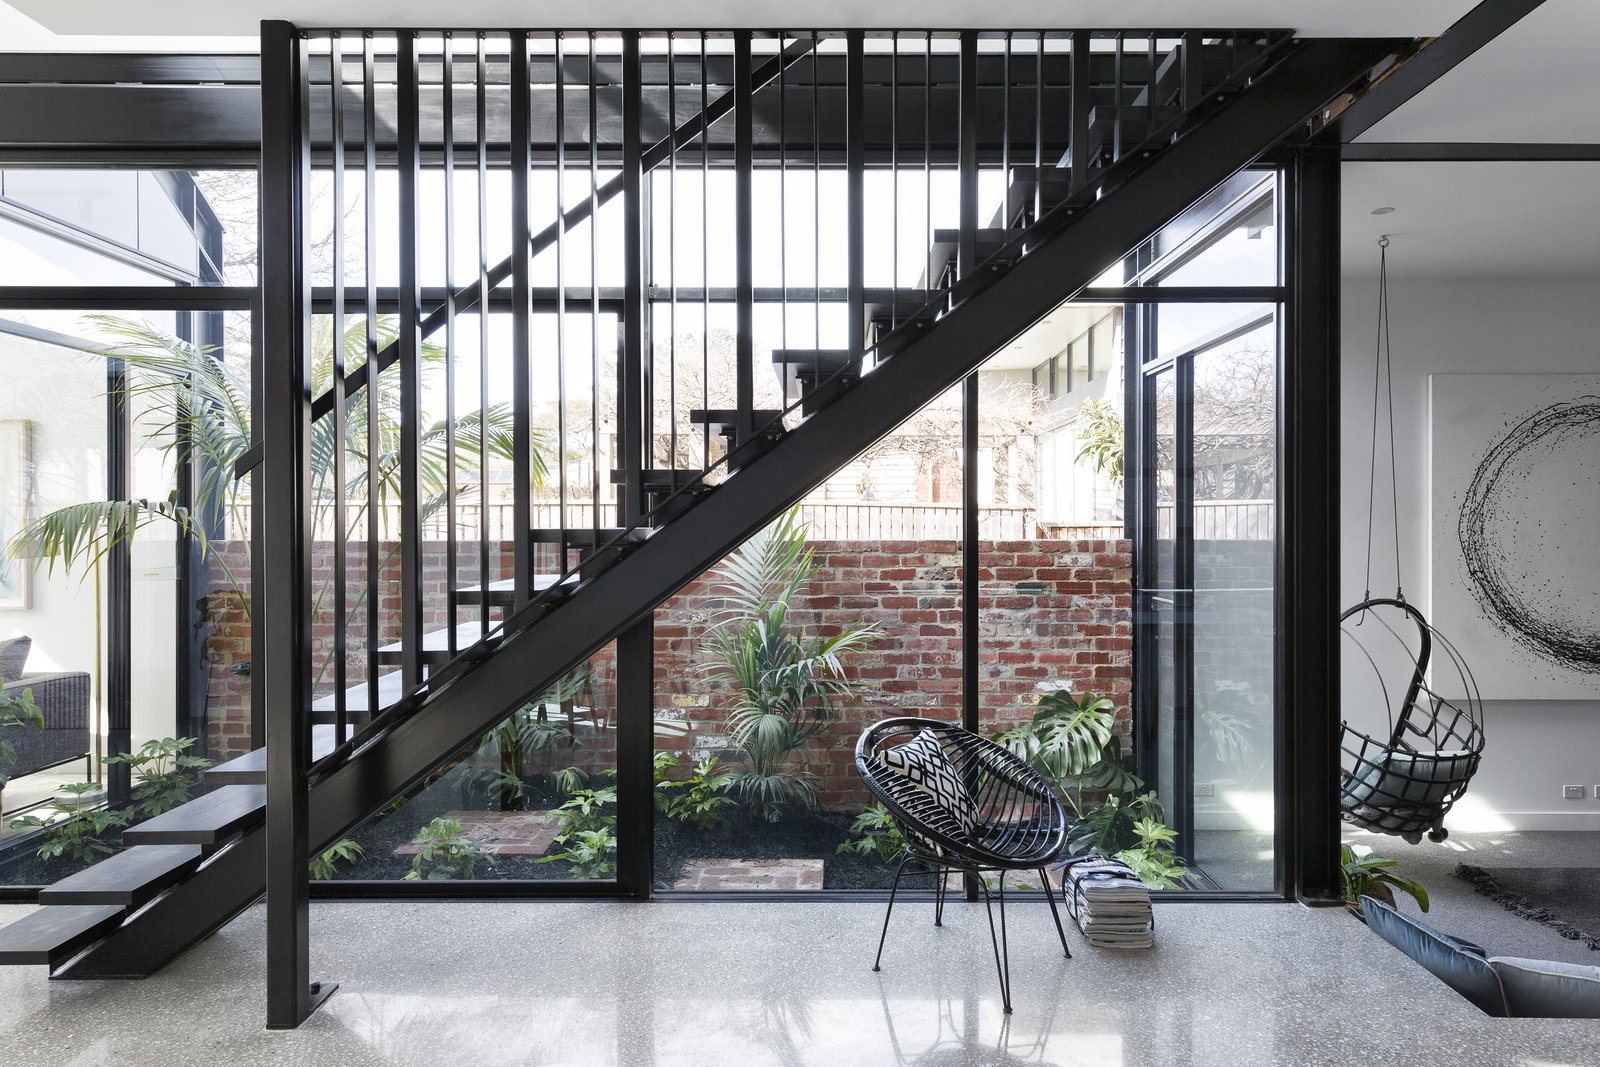 Tagged: Staircase, Wood, and Metal.  Best Staircase Photos from A Progressive Melbourne Development Company Helps Facilitate an Exquisite Home Renovation